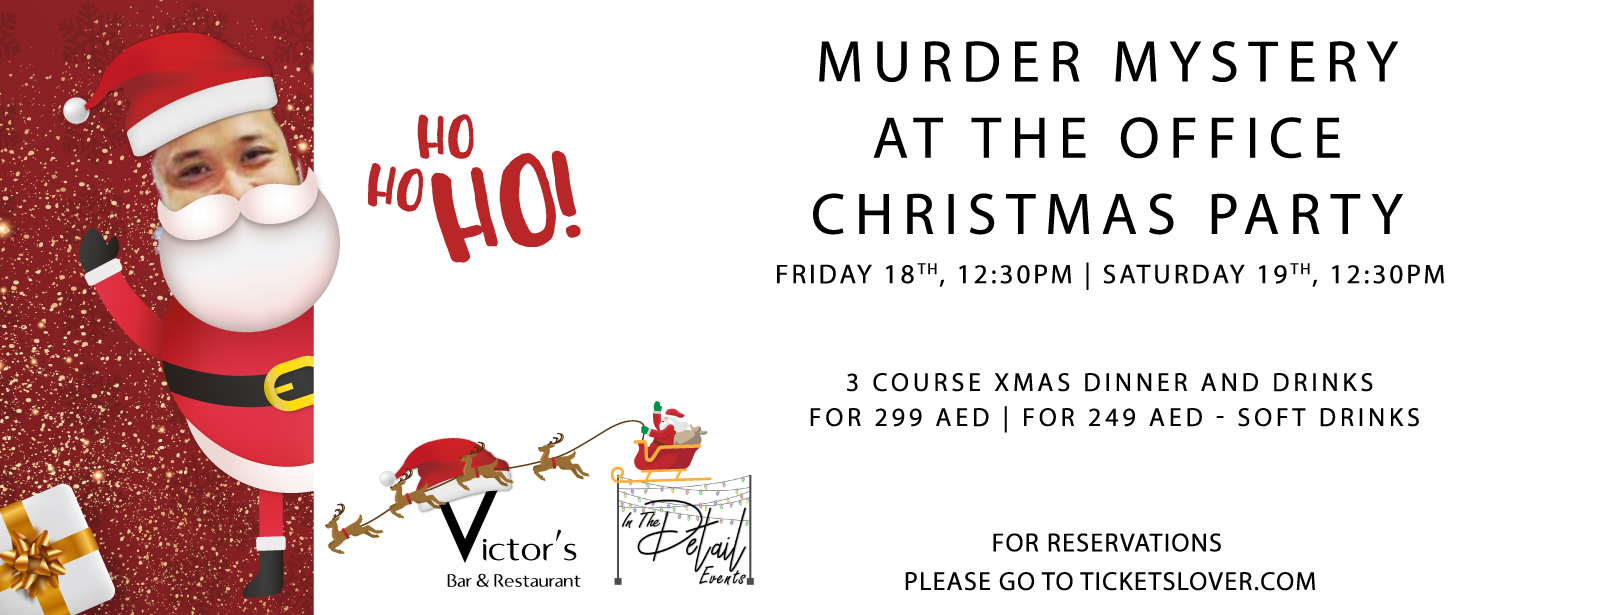 Murder Mystery at the Office Christmas Party Brunch